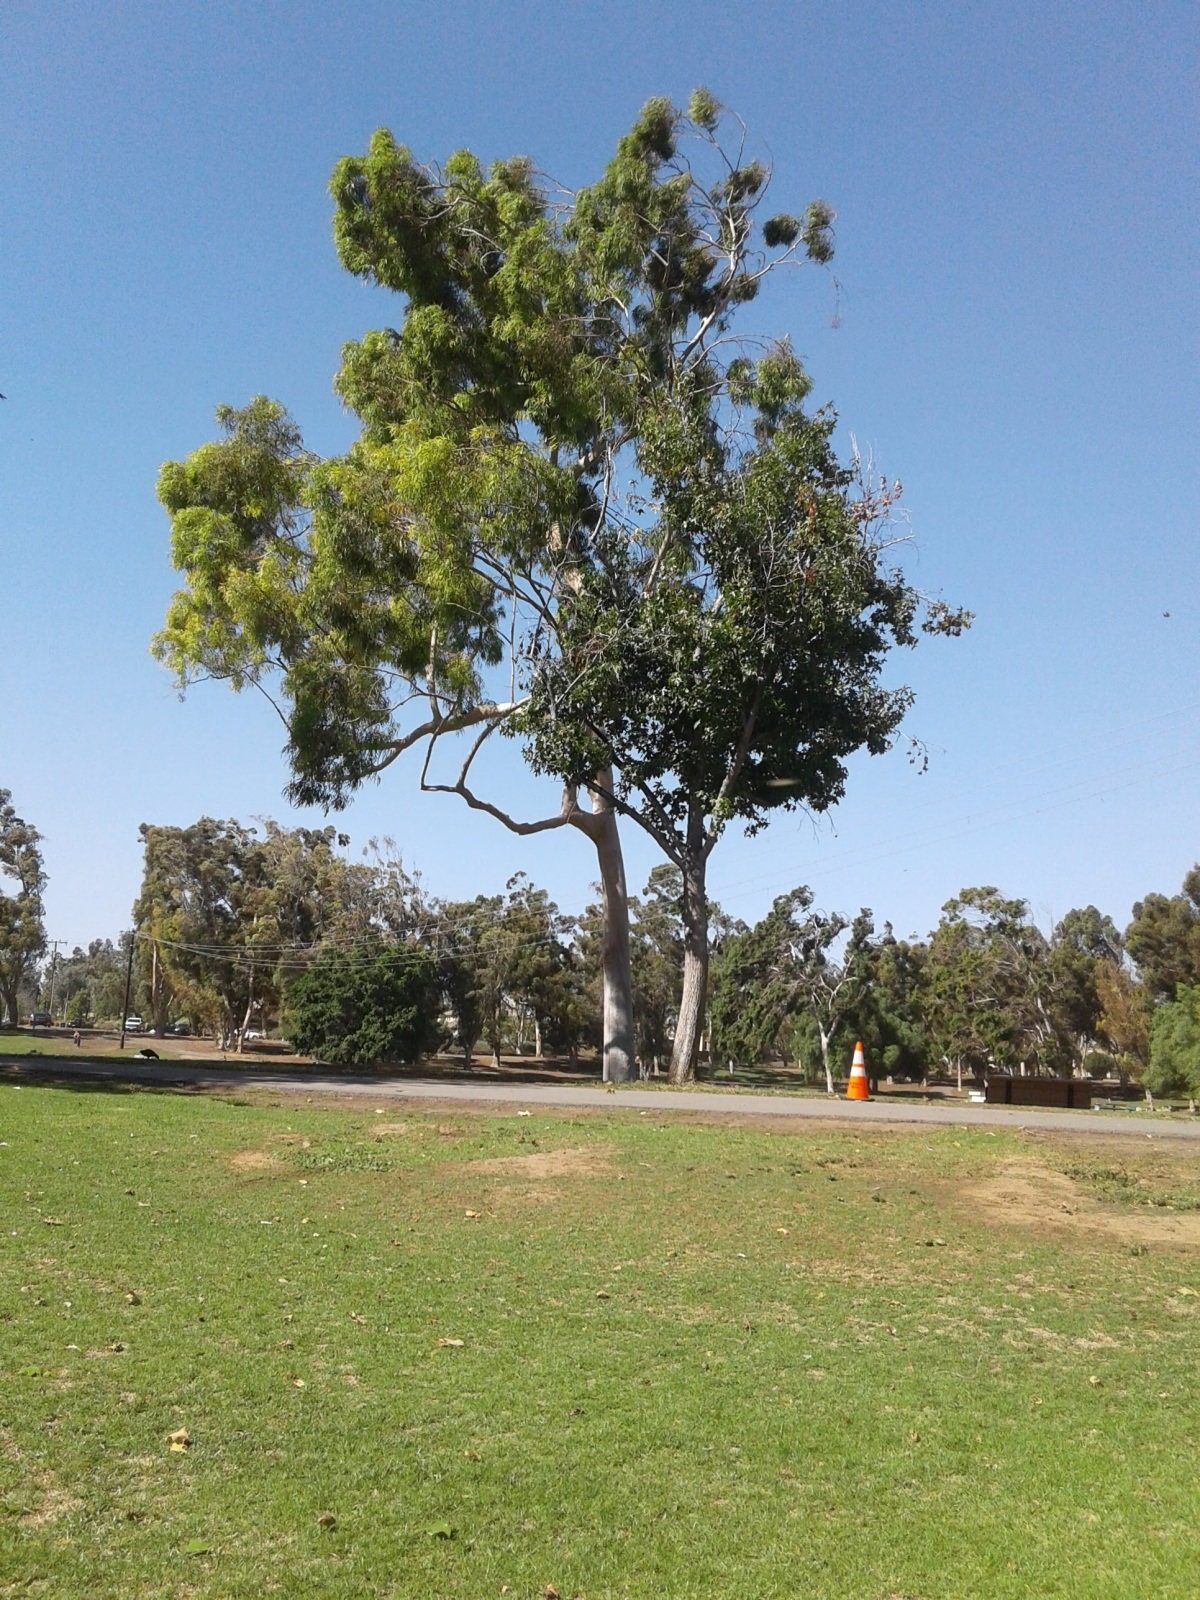 Scenery In The Park(Photography)